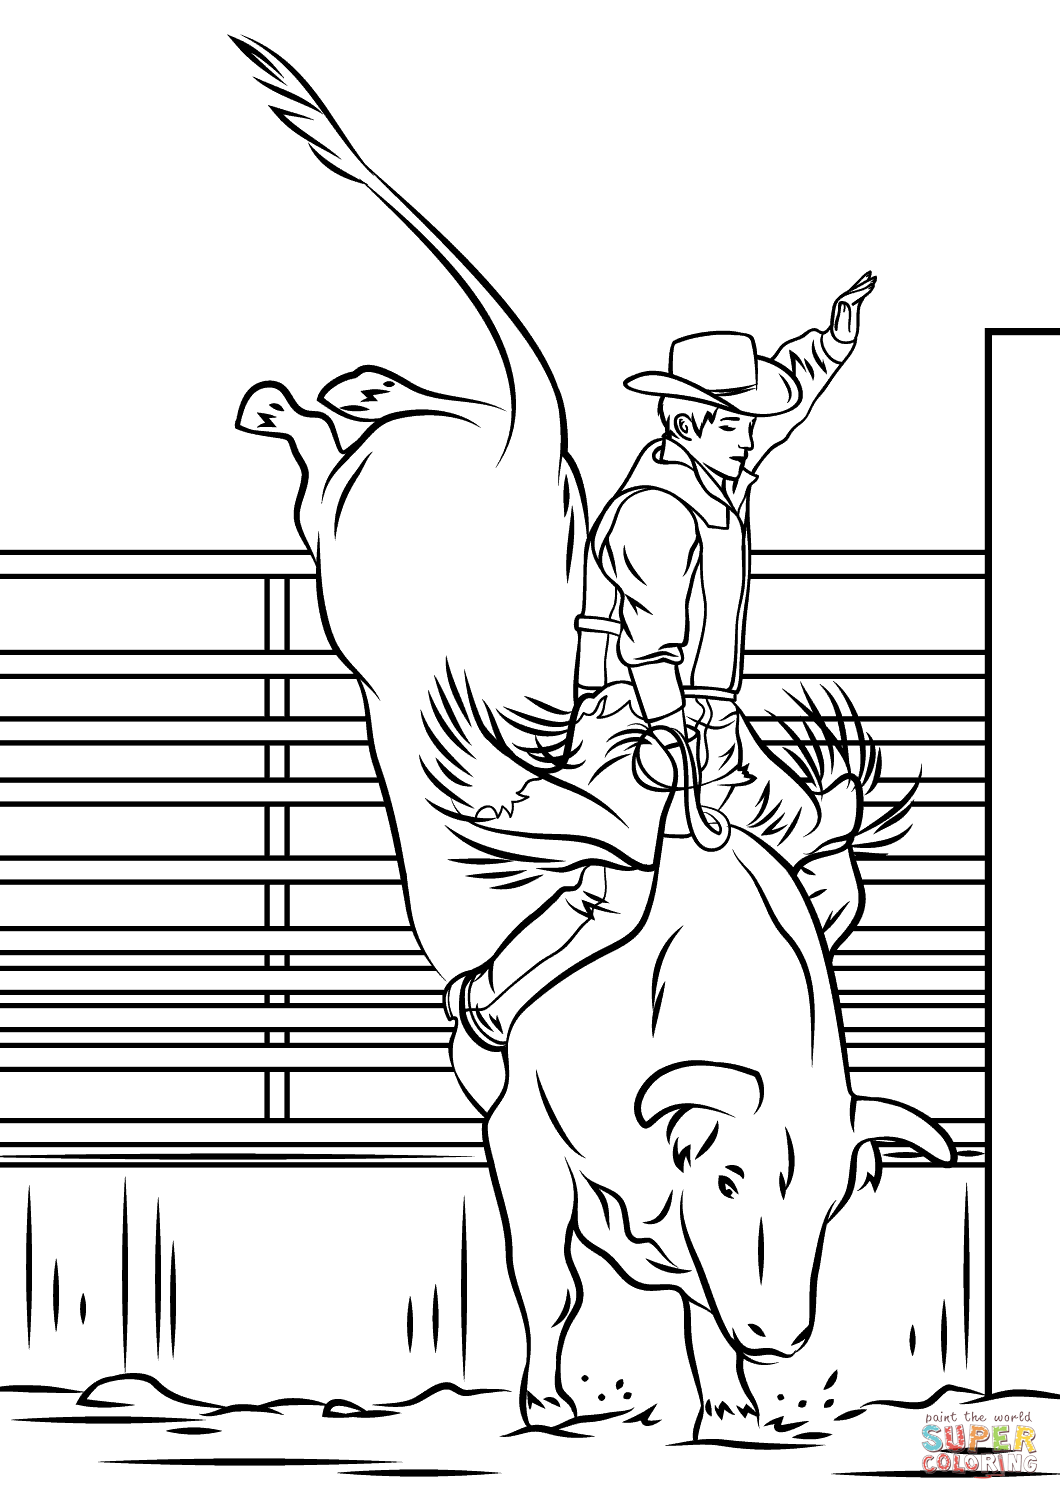 Free coloring pages roblox - Free Coloring Pages Roblox Free Coloring Pages Rodeo Click The Bull Riding Rodeo Coloring Pages